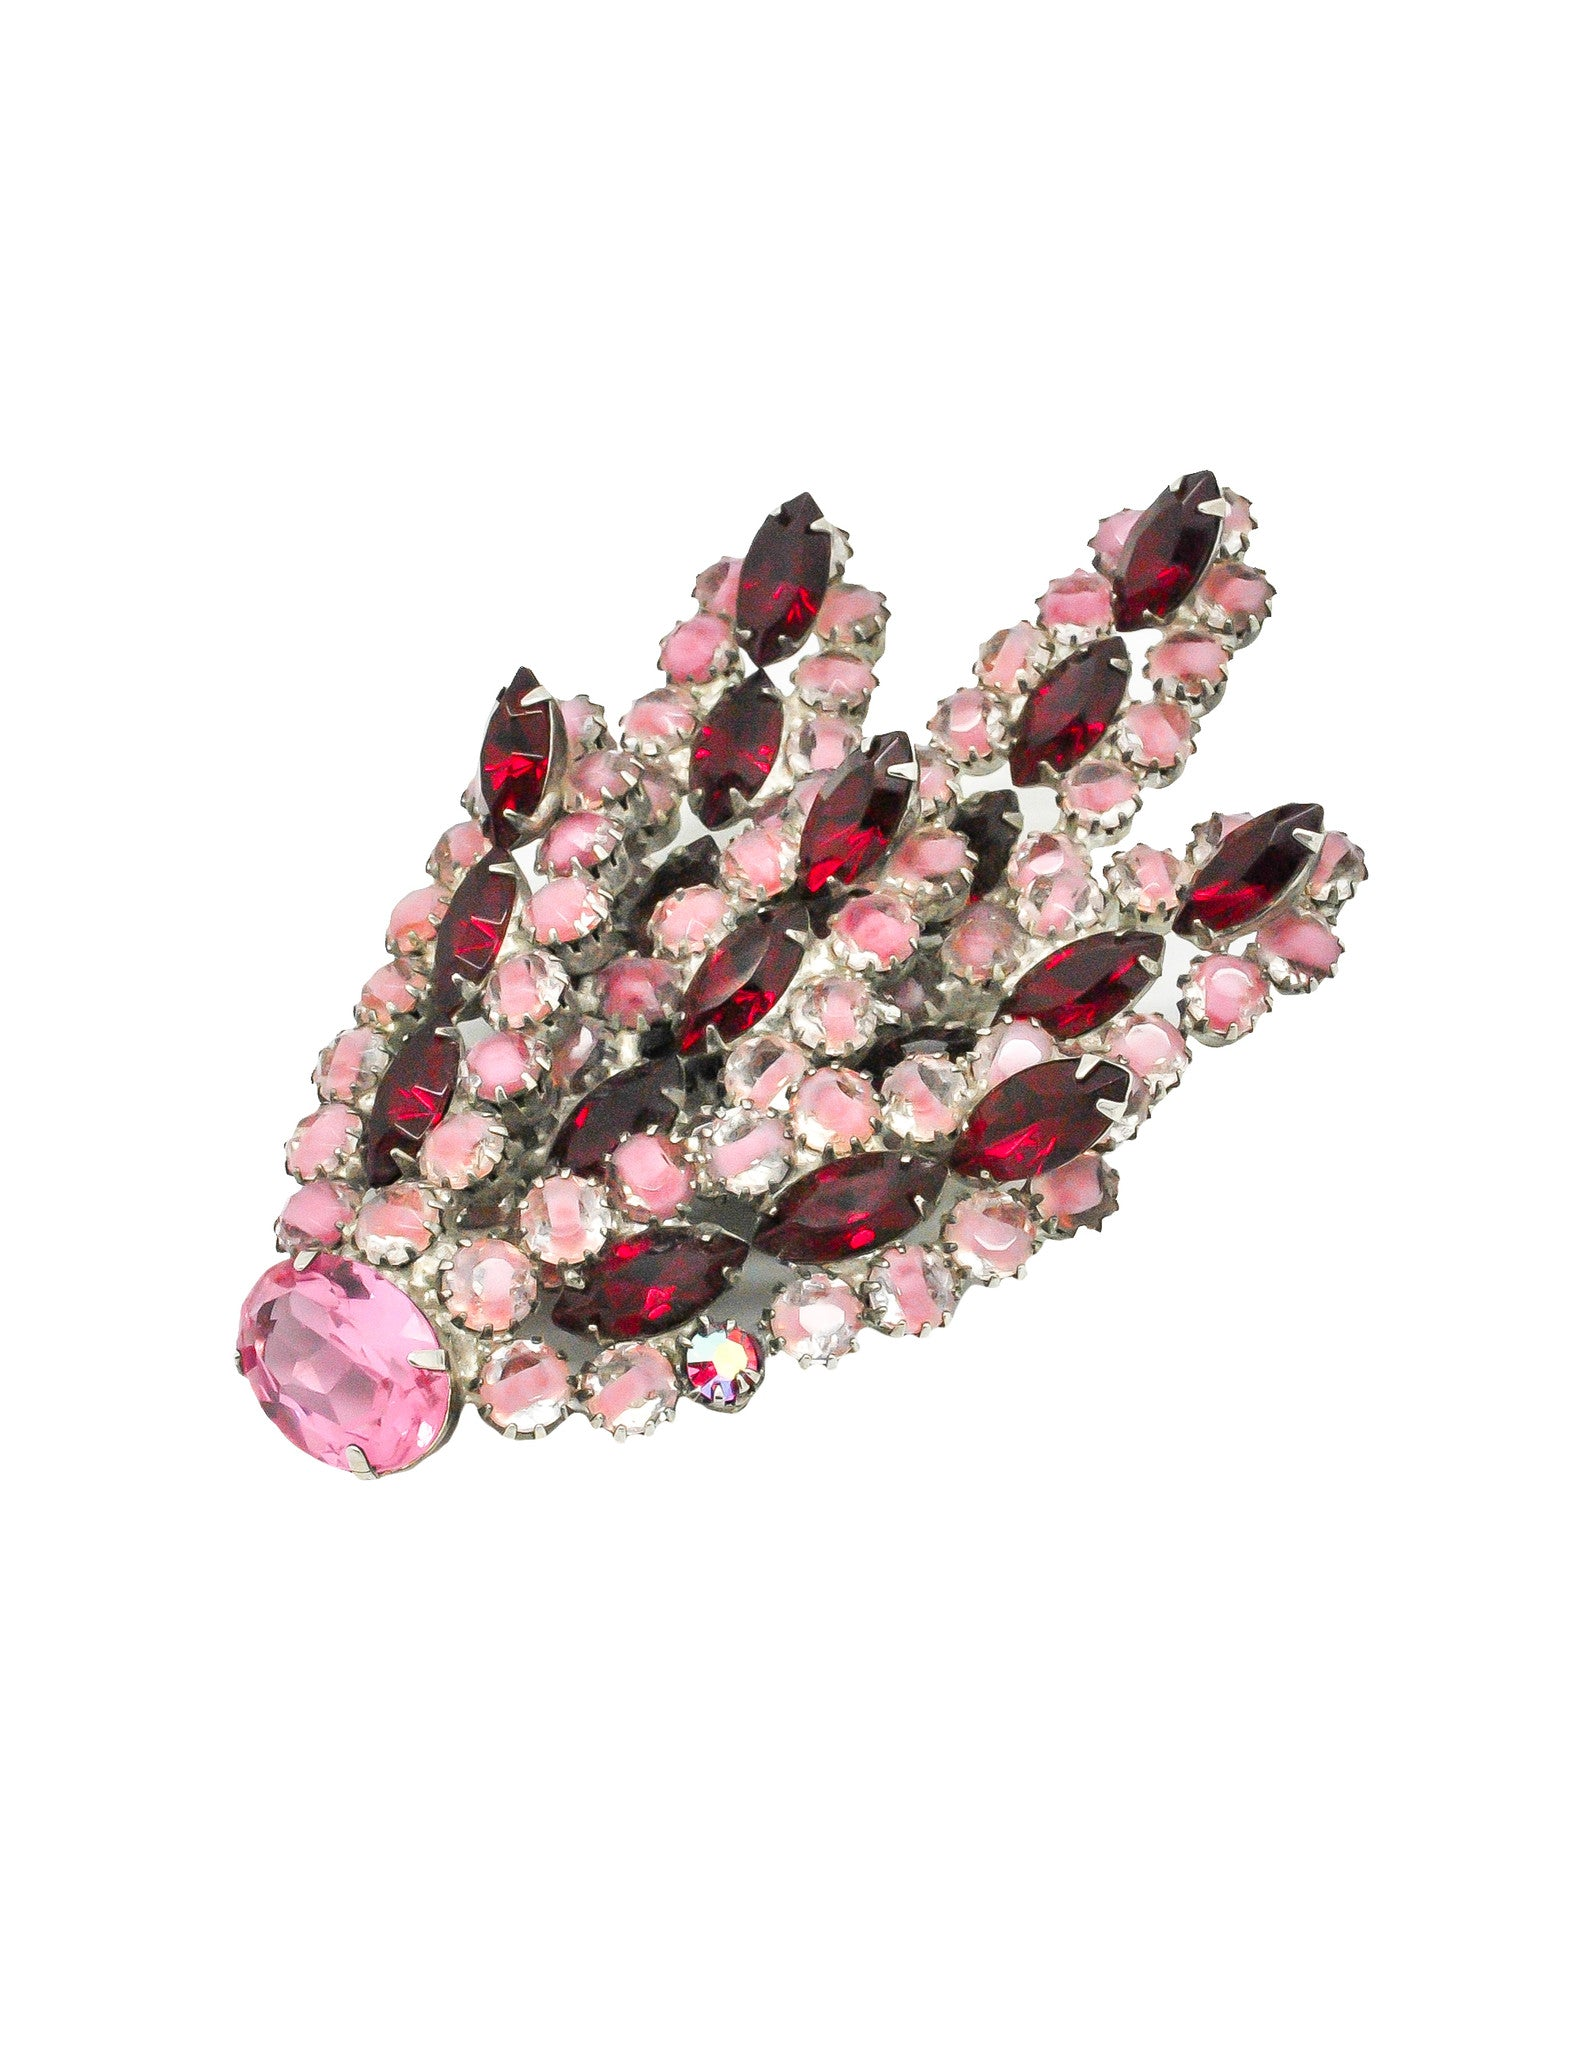 Vintage 1960s Red and Pink Glass Rhinestone Brooch - Amarcord Vintage Fashion  - 1